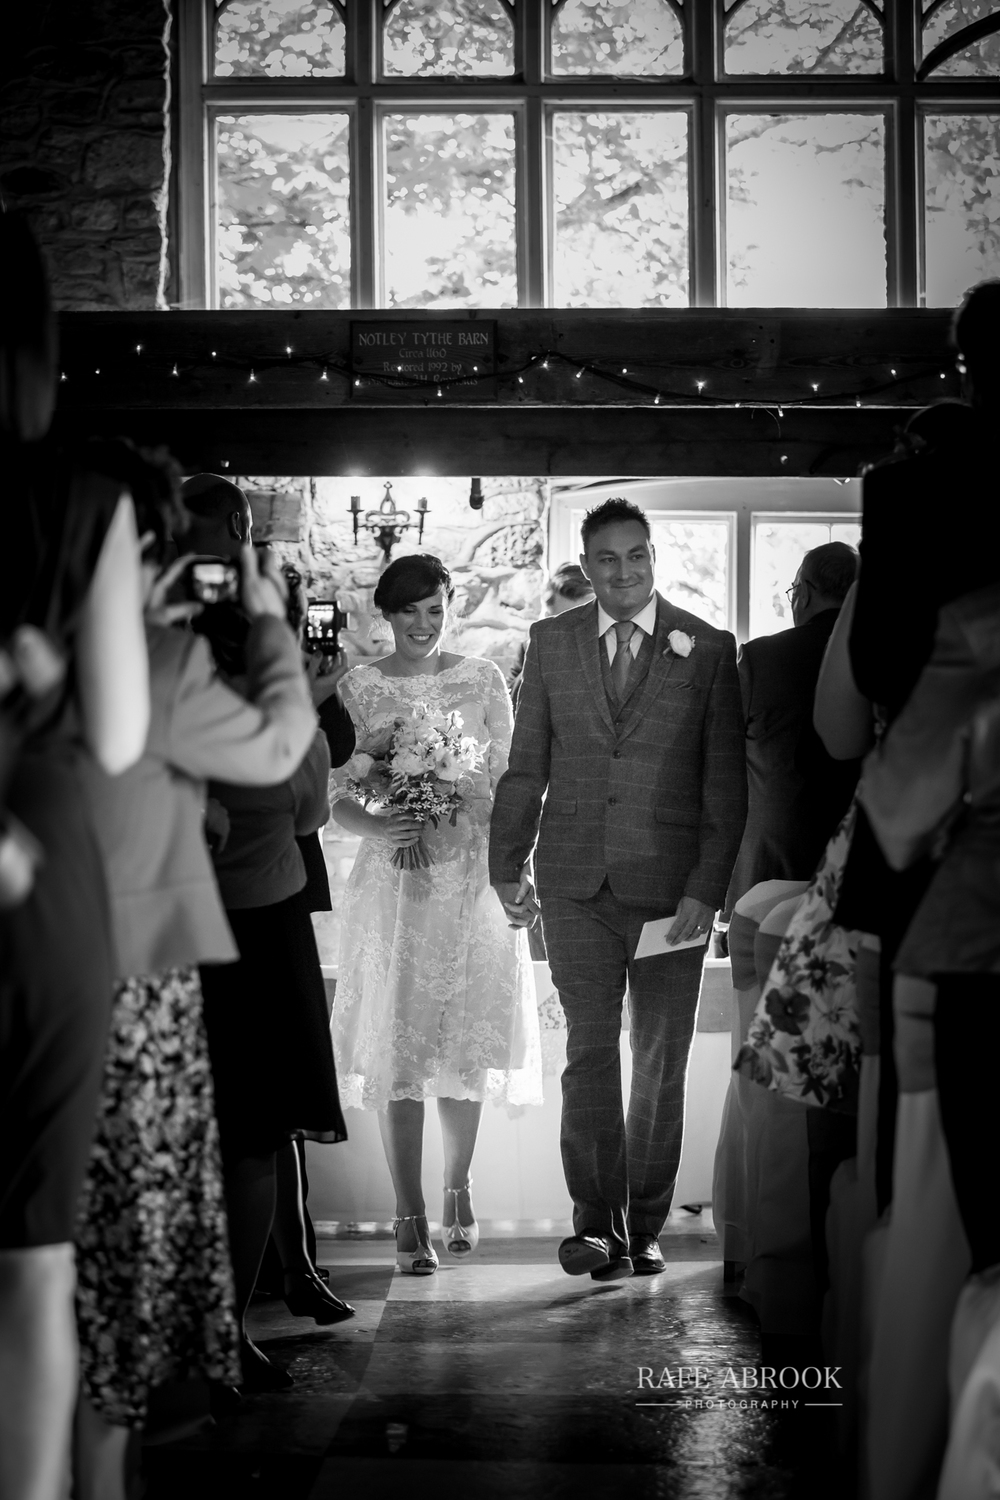 jon & laura wedding notley tythe barn wedding buckinghamshire-1214.jpg